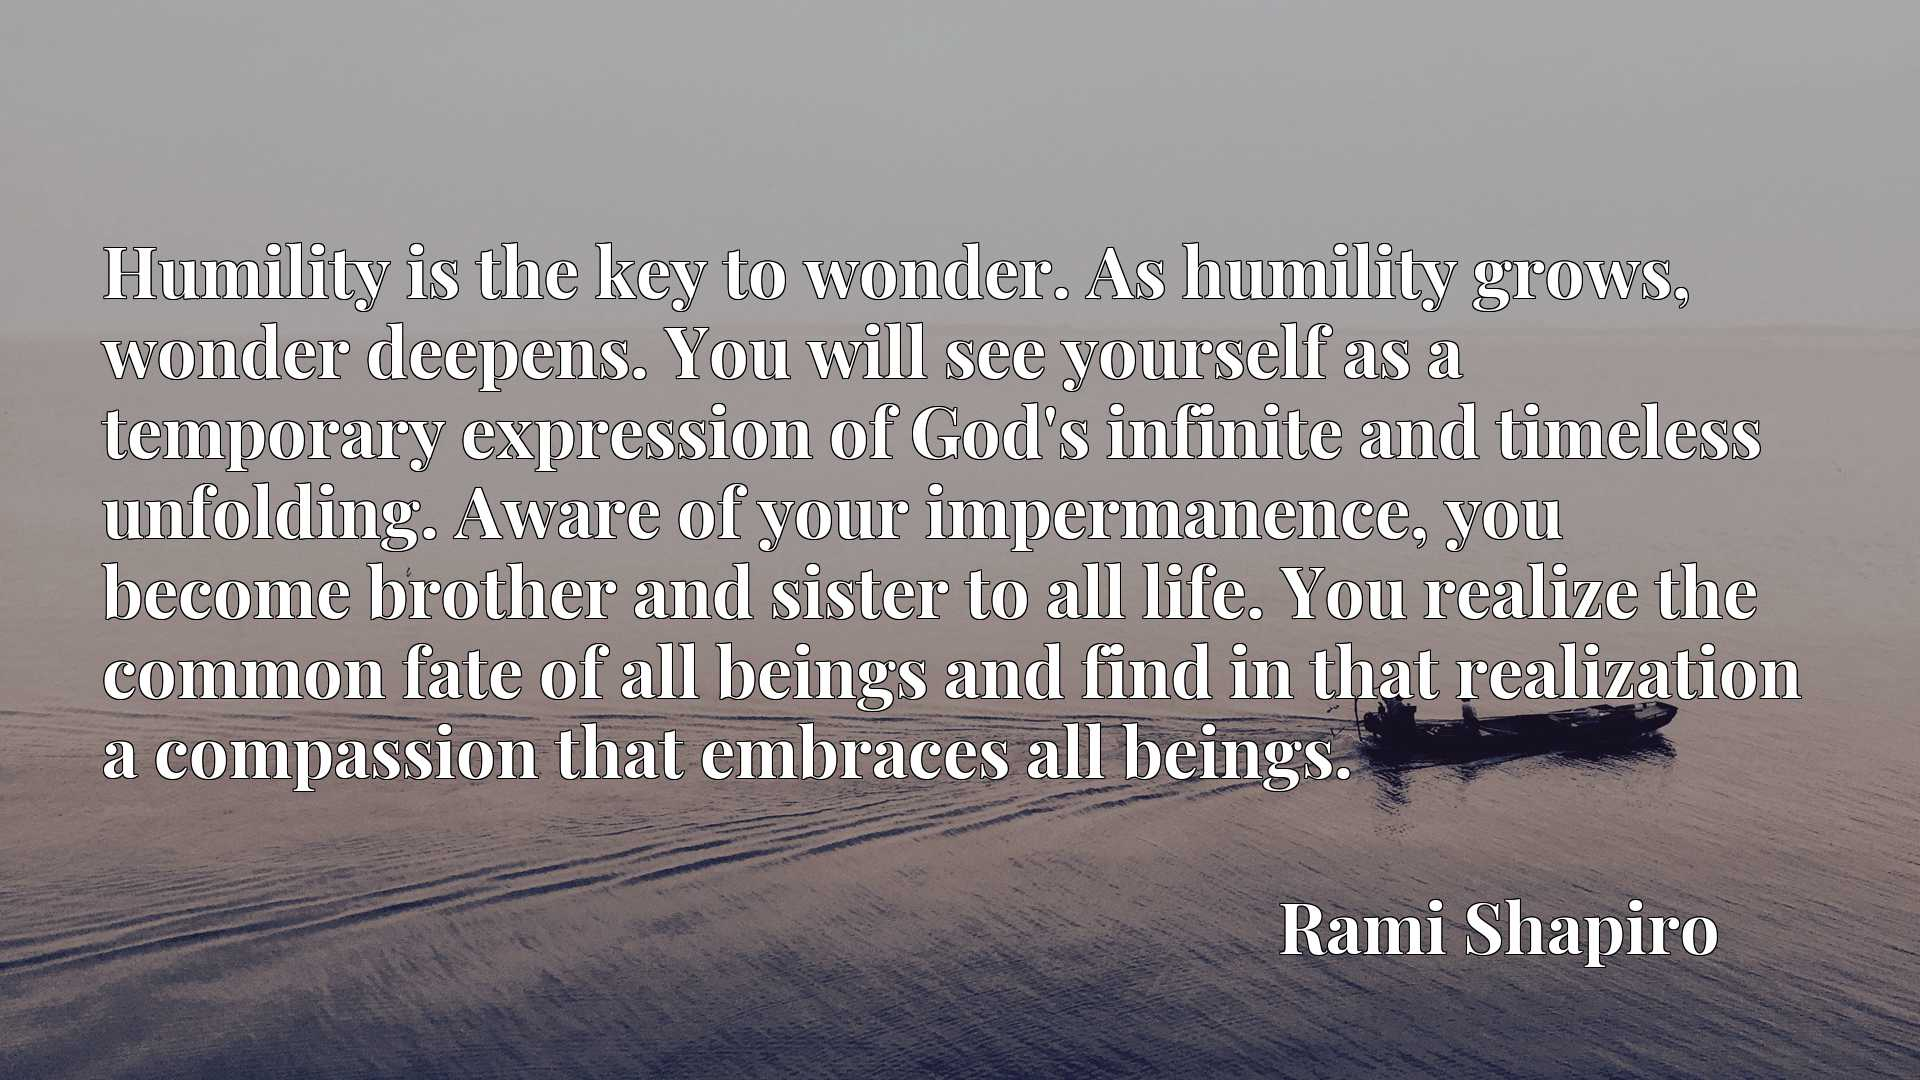 Humility is the key to wonder. As humility grows, wonder deepens. You will see yourself as a temporary expression of God's infinite and timeless unfolding. Aware of your impermanence, you become brother and sister to all life. You realize the common fate of all beings and find in that realization a compassion that embraces all beings.